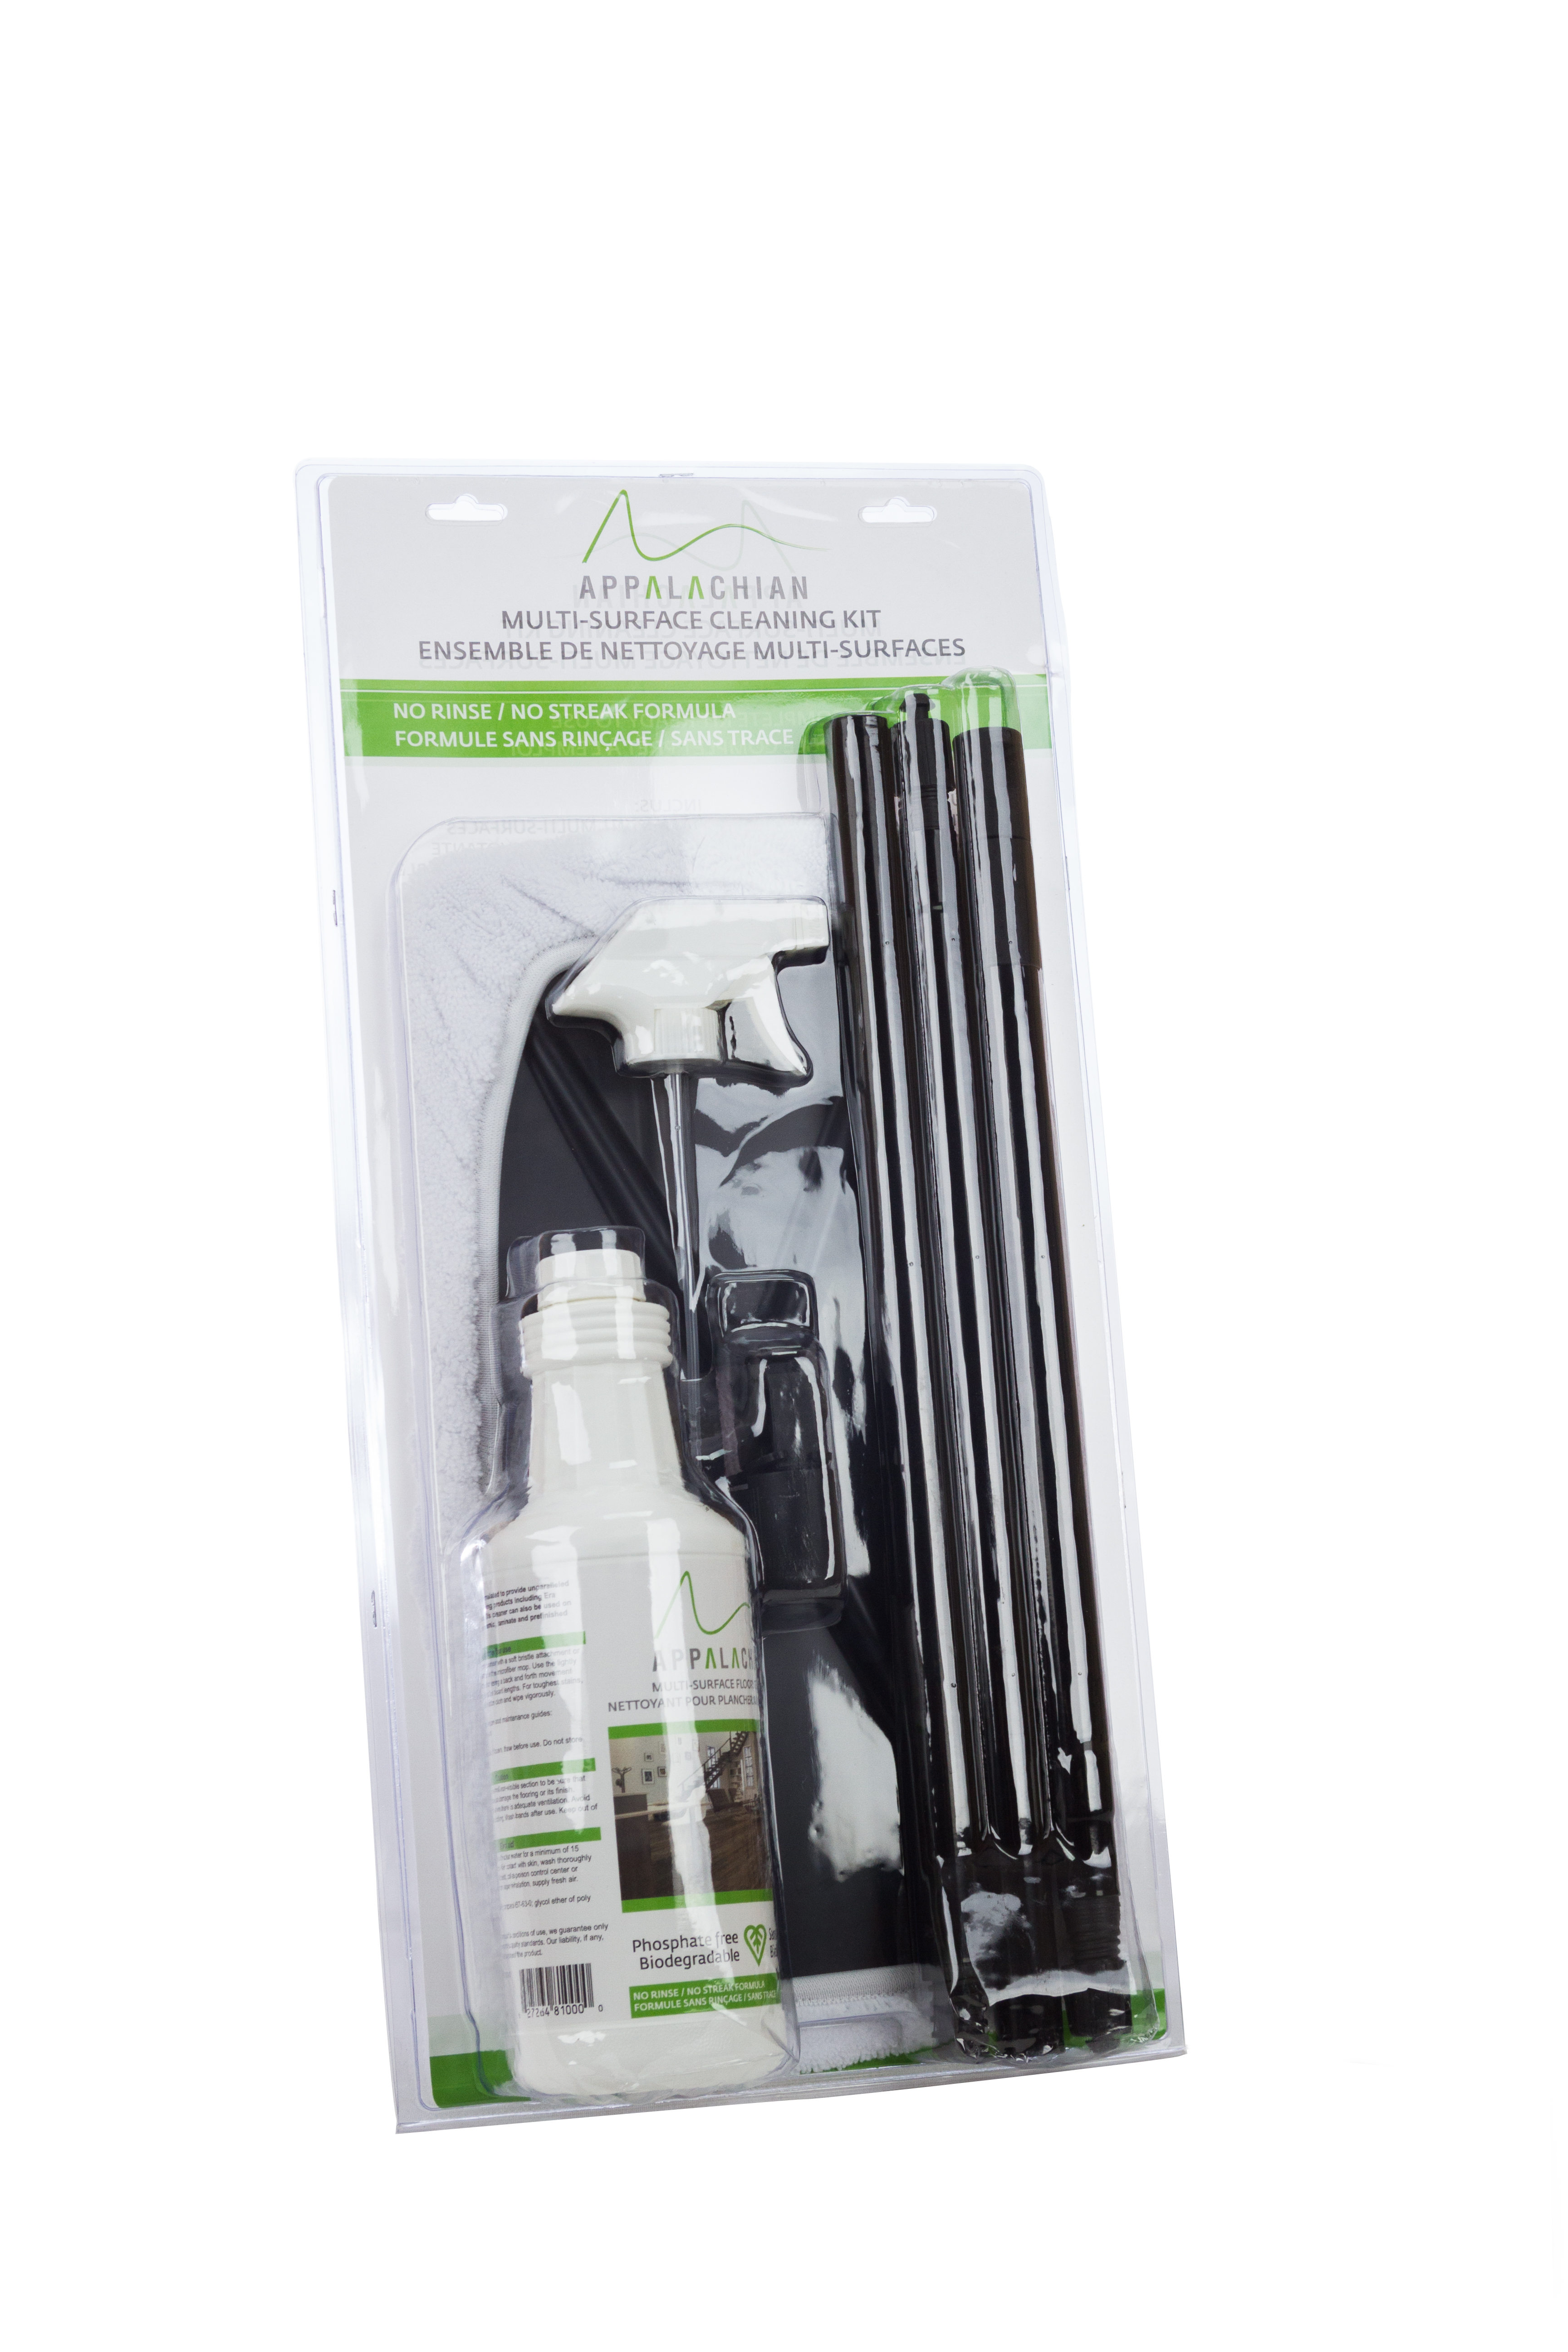 Hardwood Floor Cleaner - Complete Kit